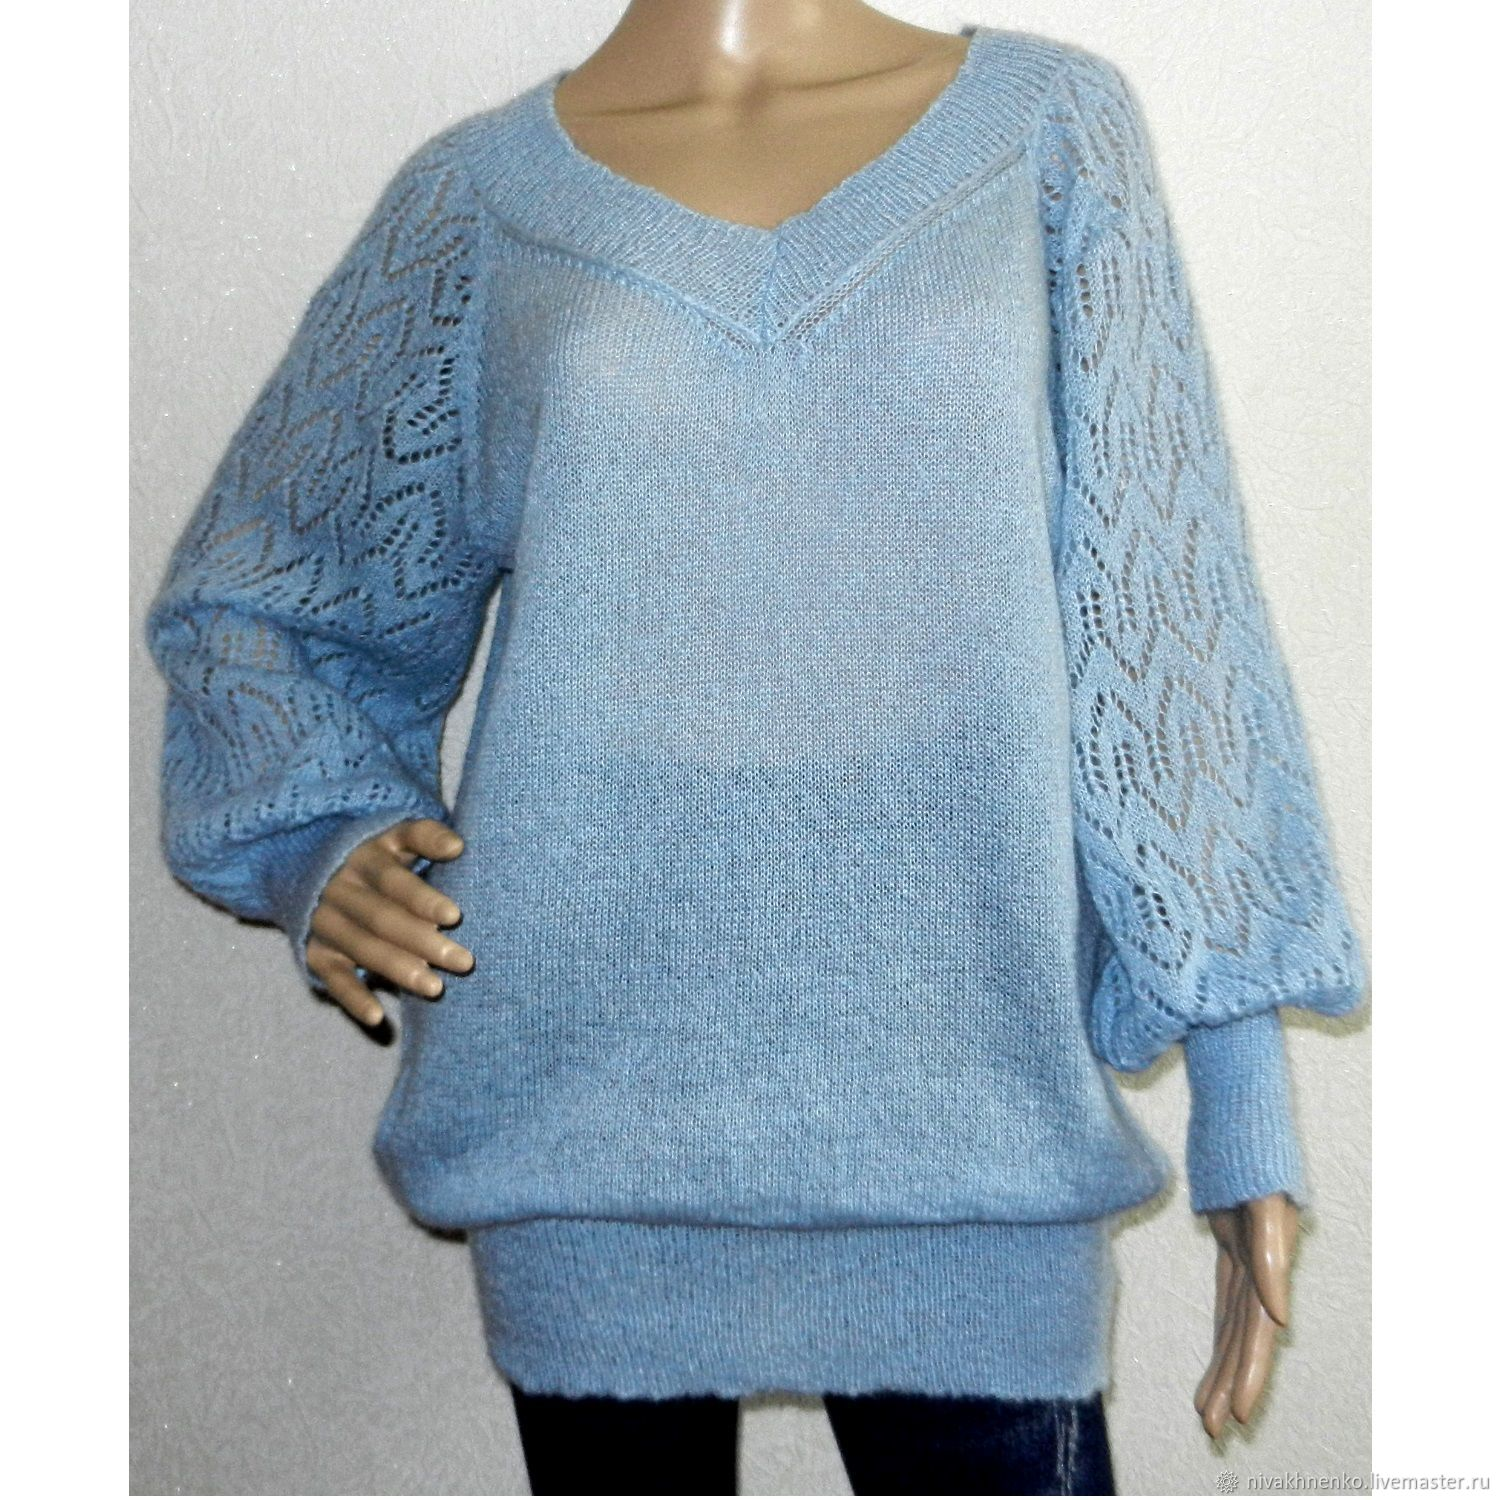 Tunic knitted from kid mohair, Tunics, Moscow,  Фото №1